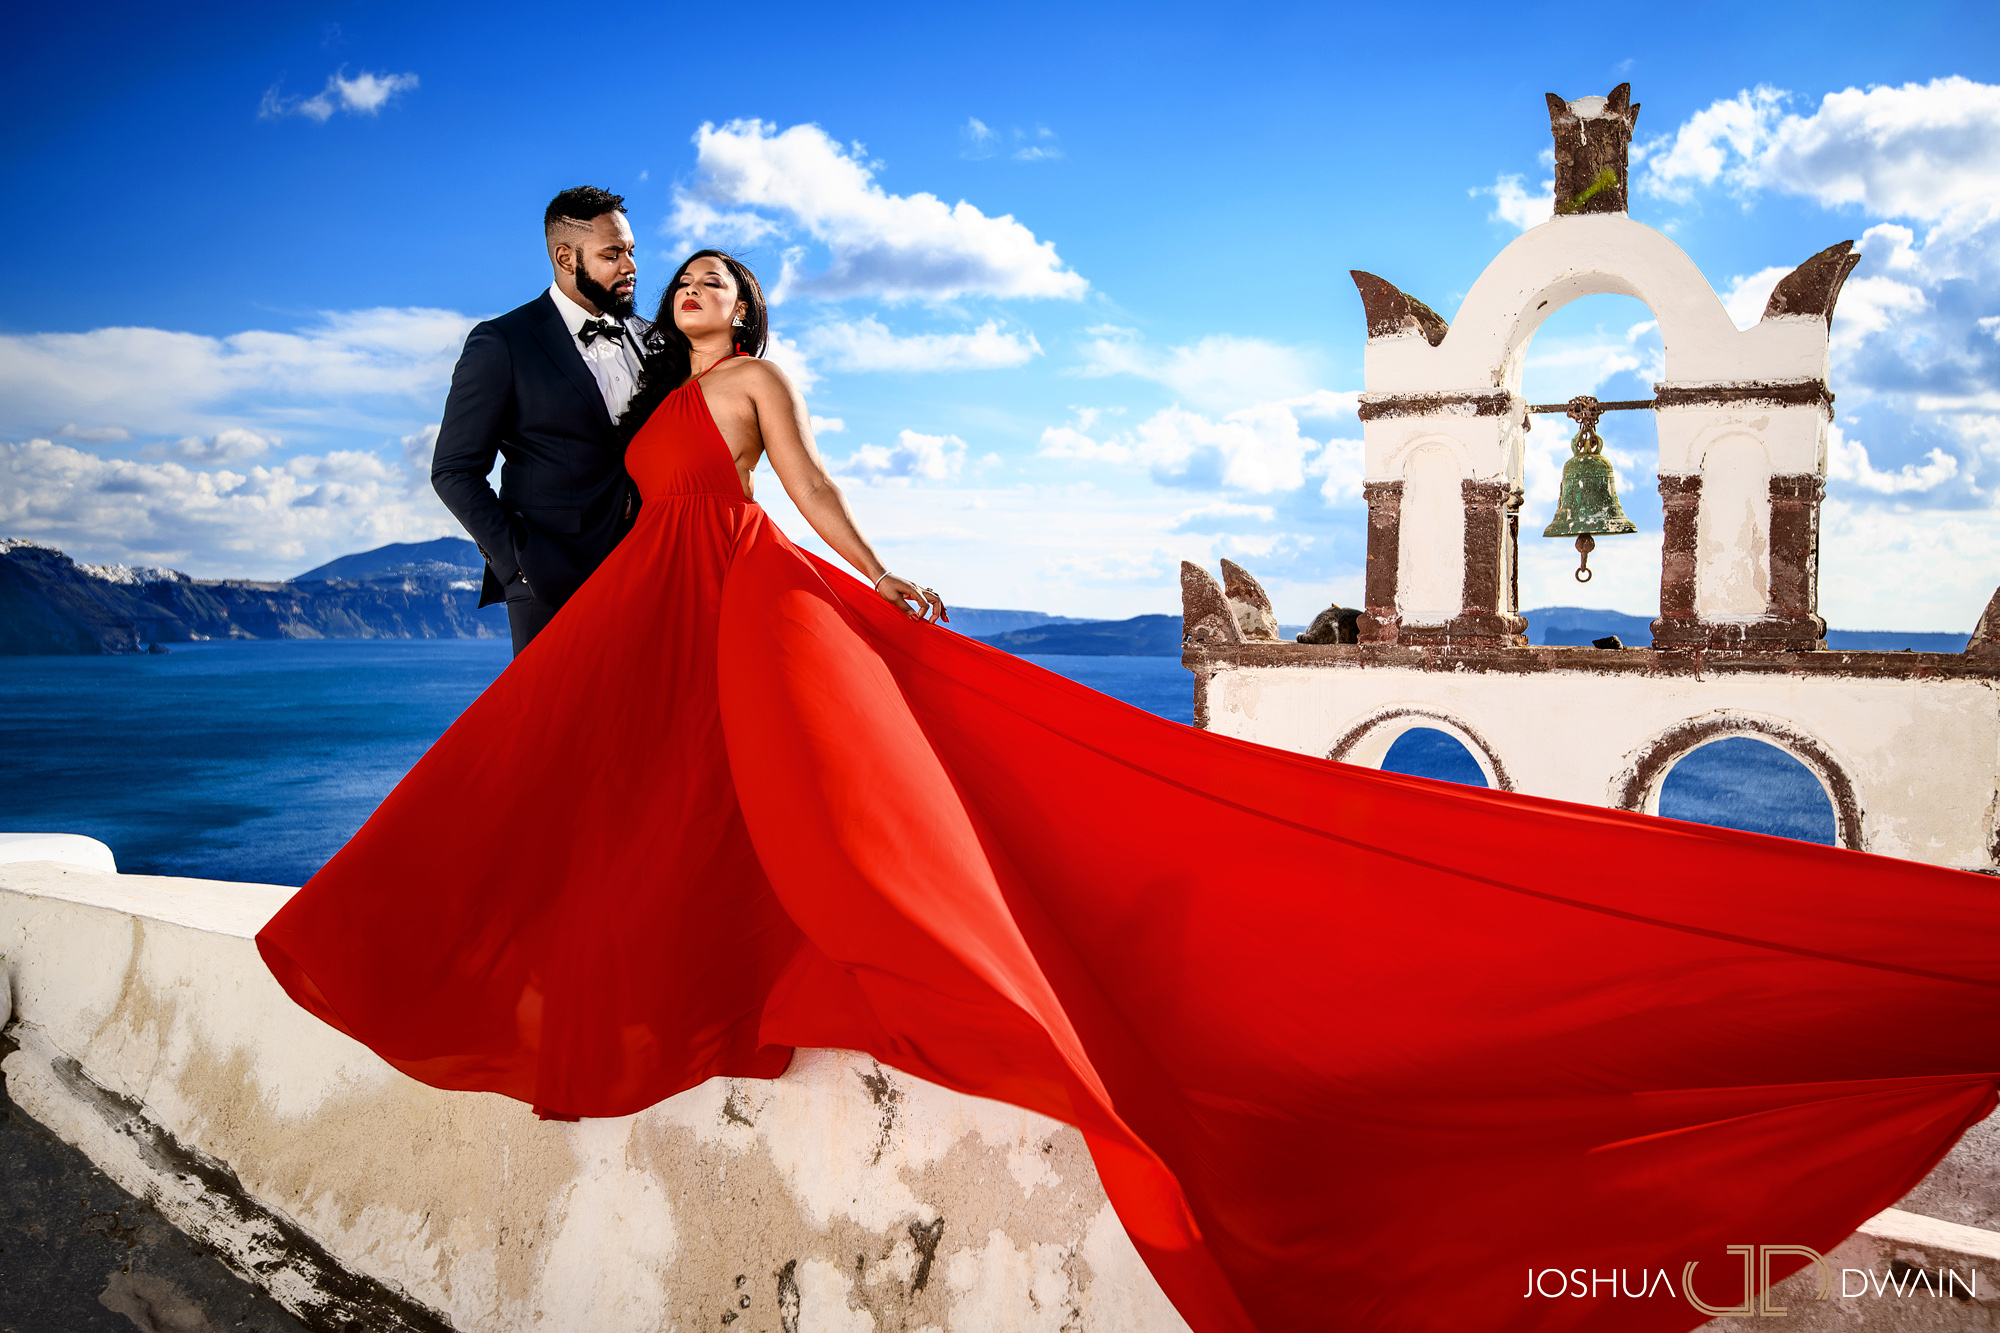 ekene-issac-02-santorini-oia-thira-greece-wedding-engagement-photos-african-american-destination-photographer-joshua-dwain